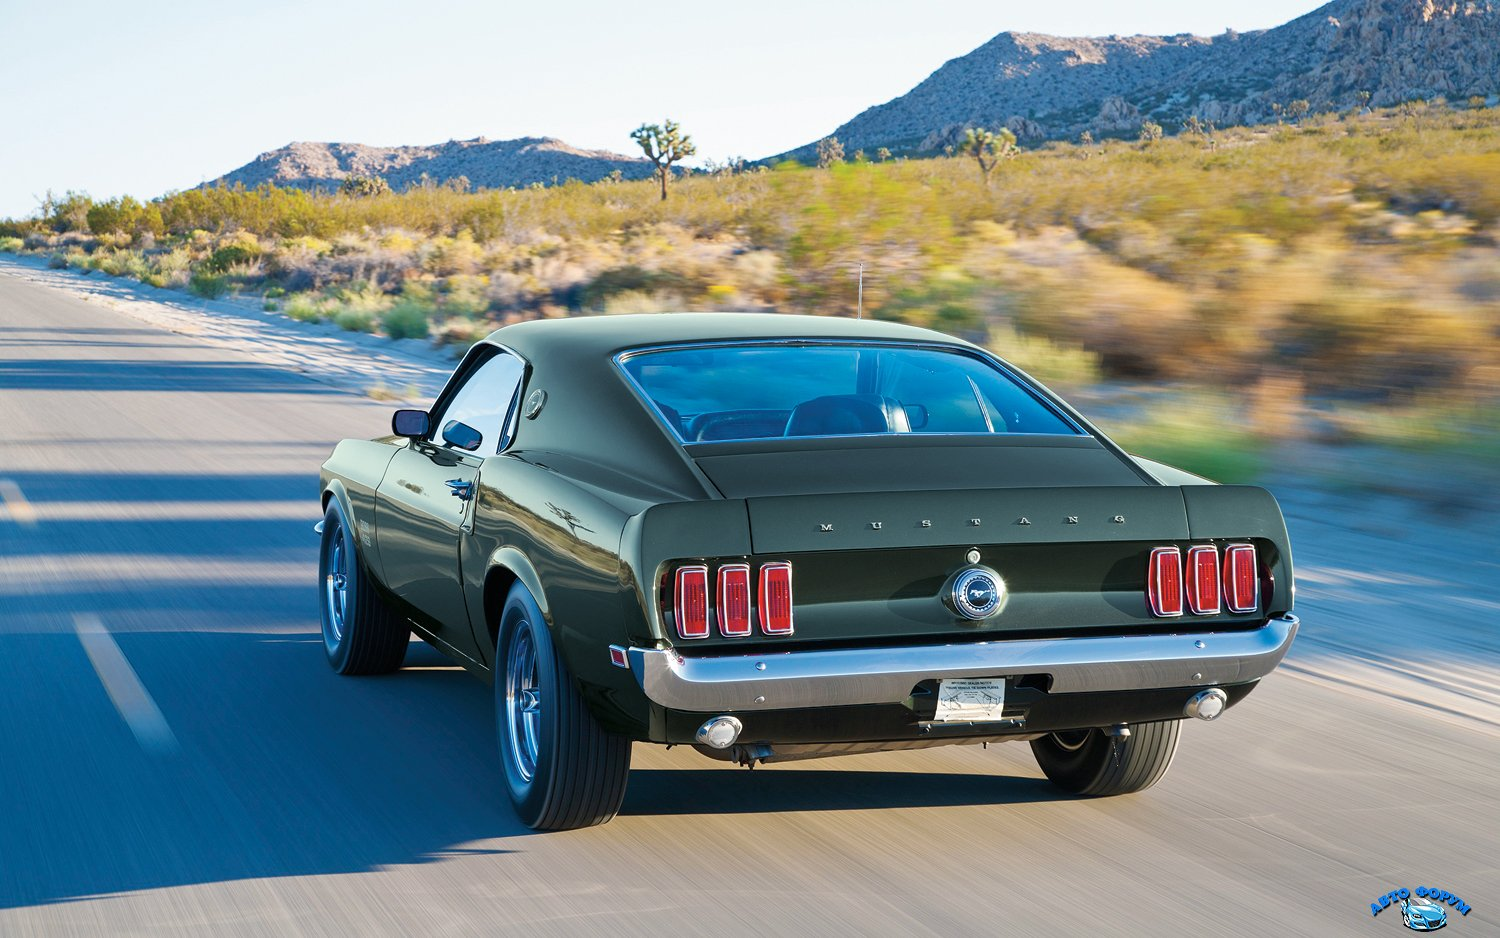 1969-ford-mustang-boss-429-rear-view.jpg